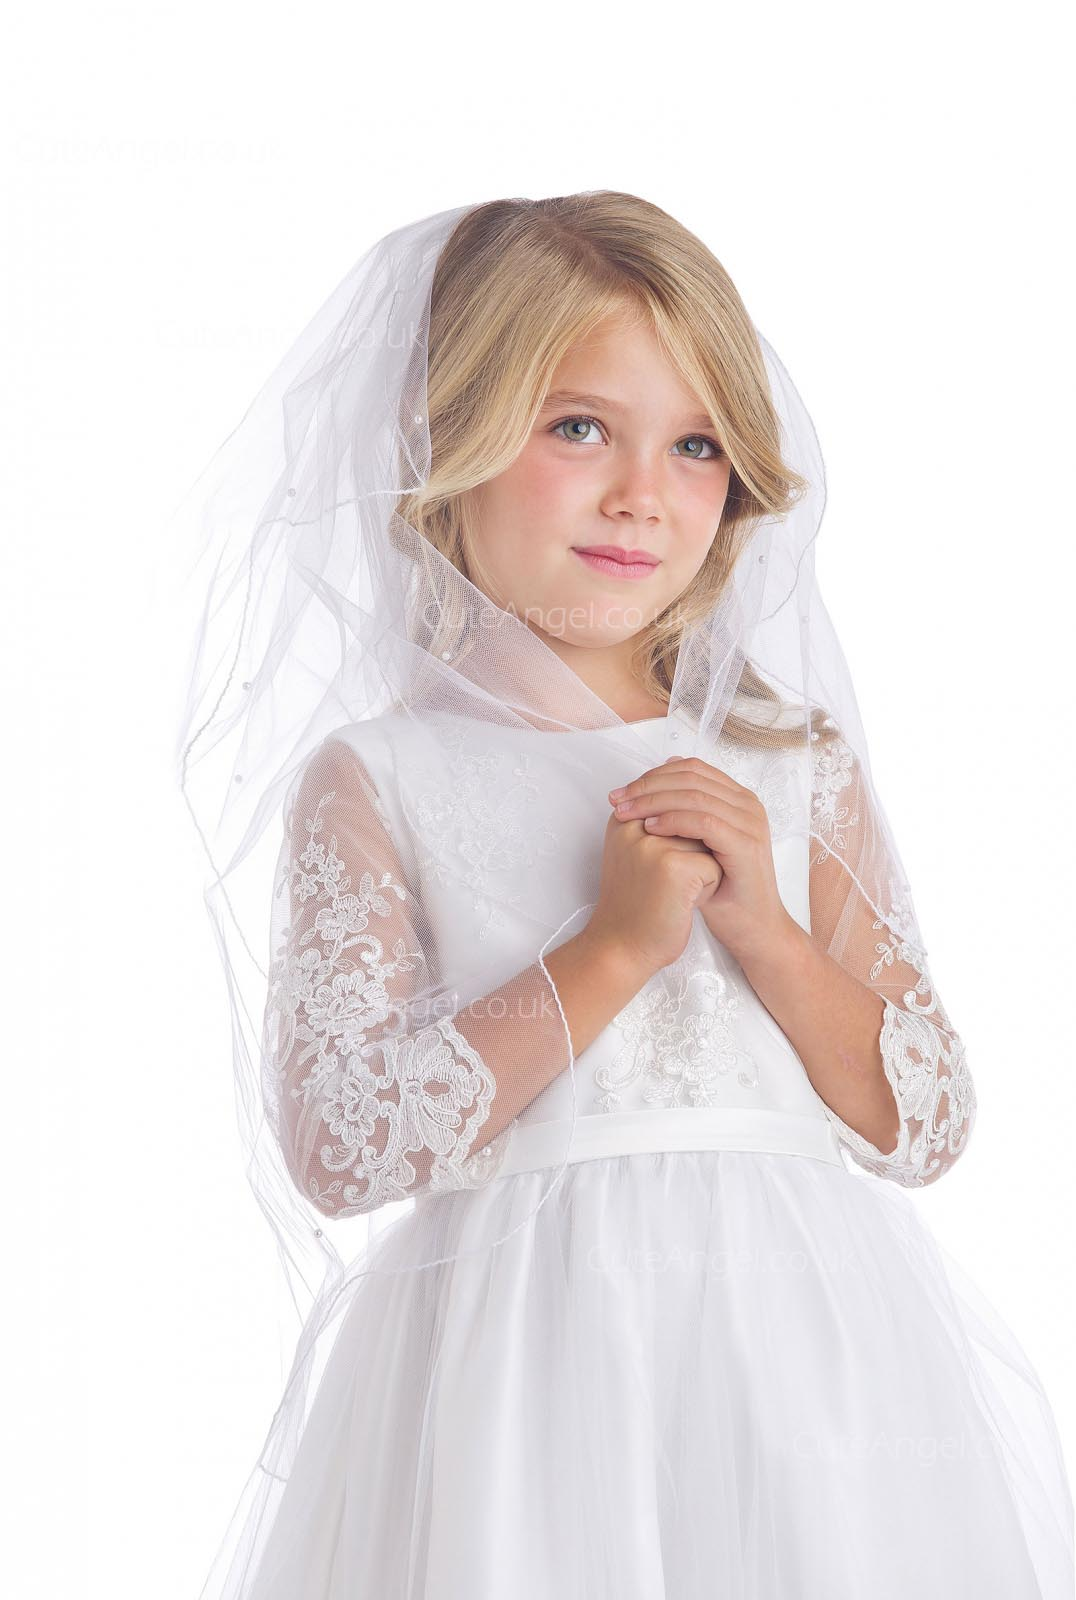 Girls Dress Style 066818 White Floor-length Lace Round A-line Dress in Choice of Colour